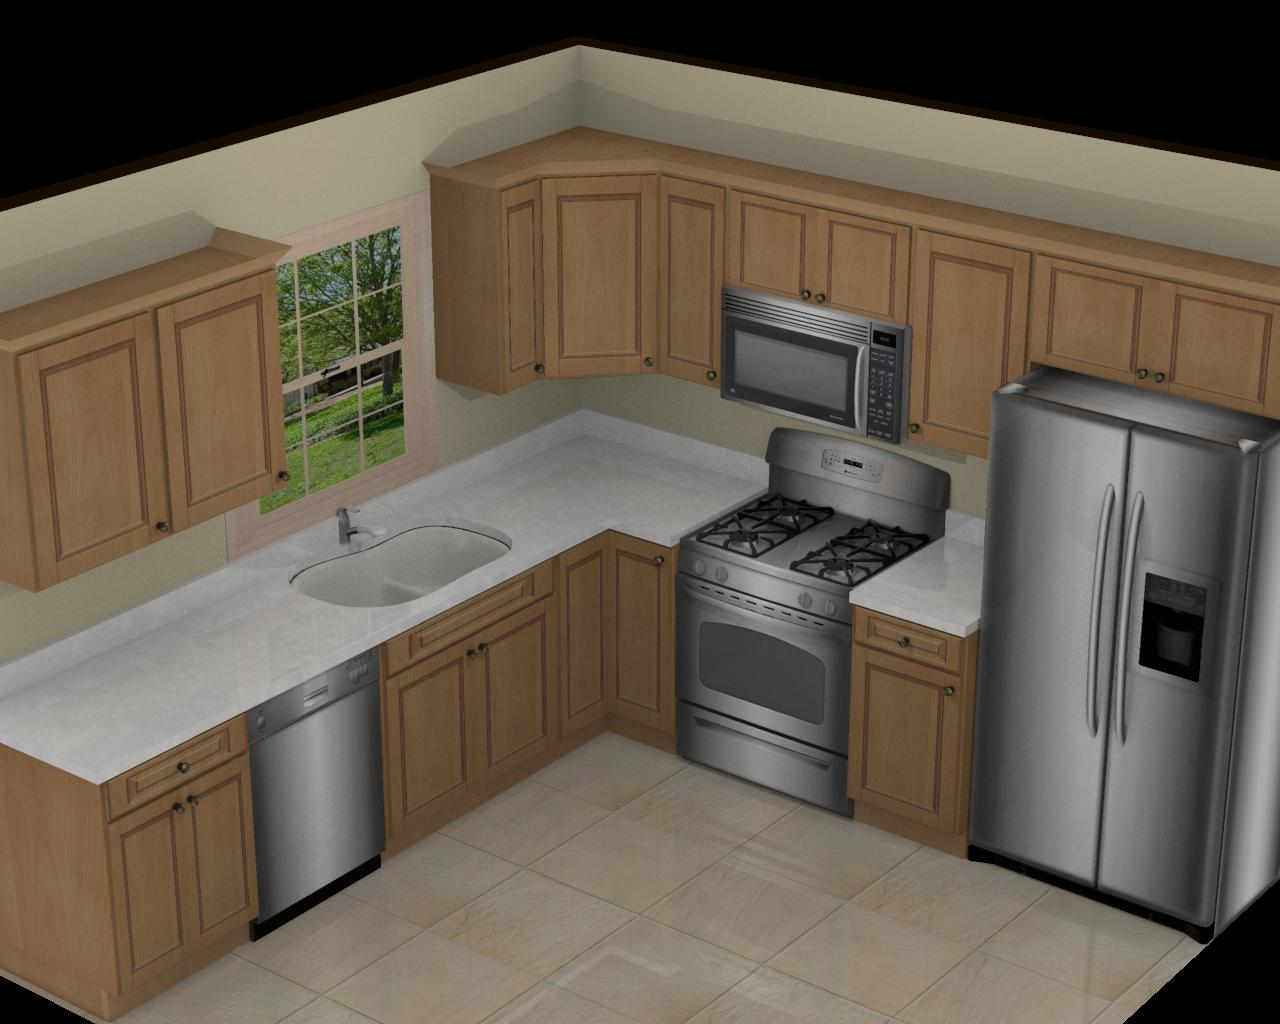 small kitchen design layout ideas photo - 2